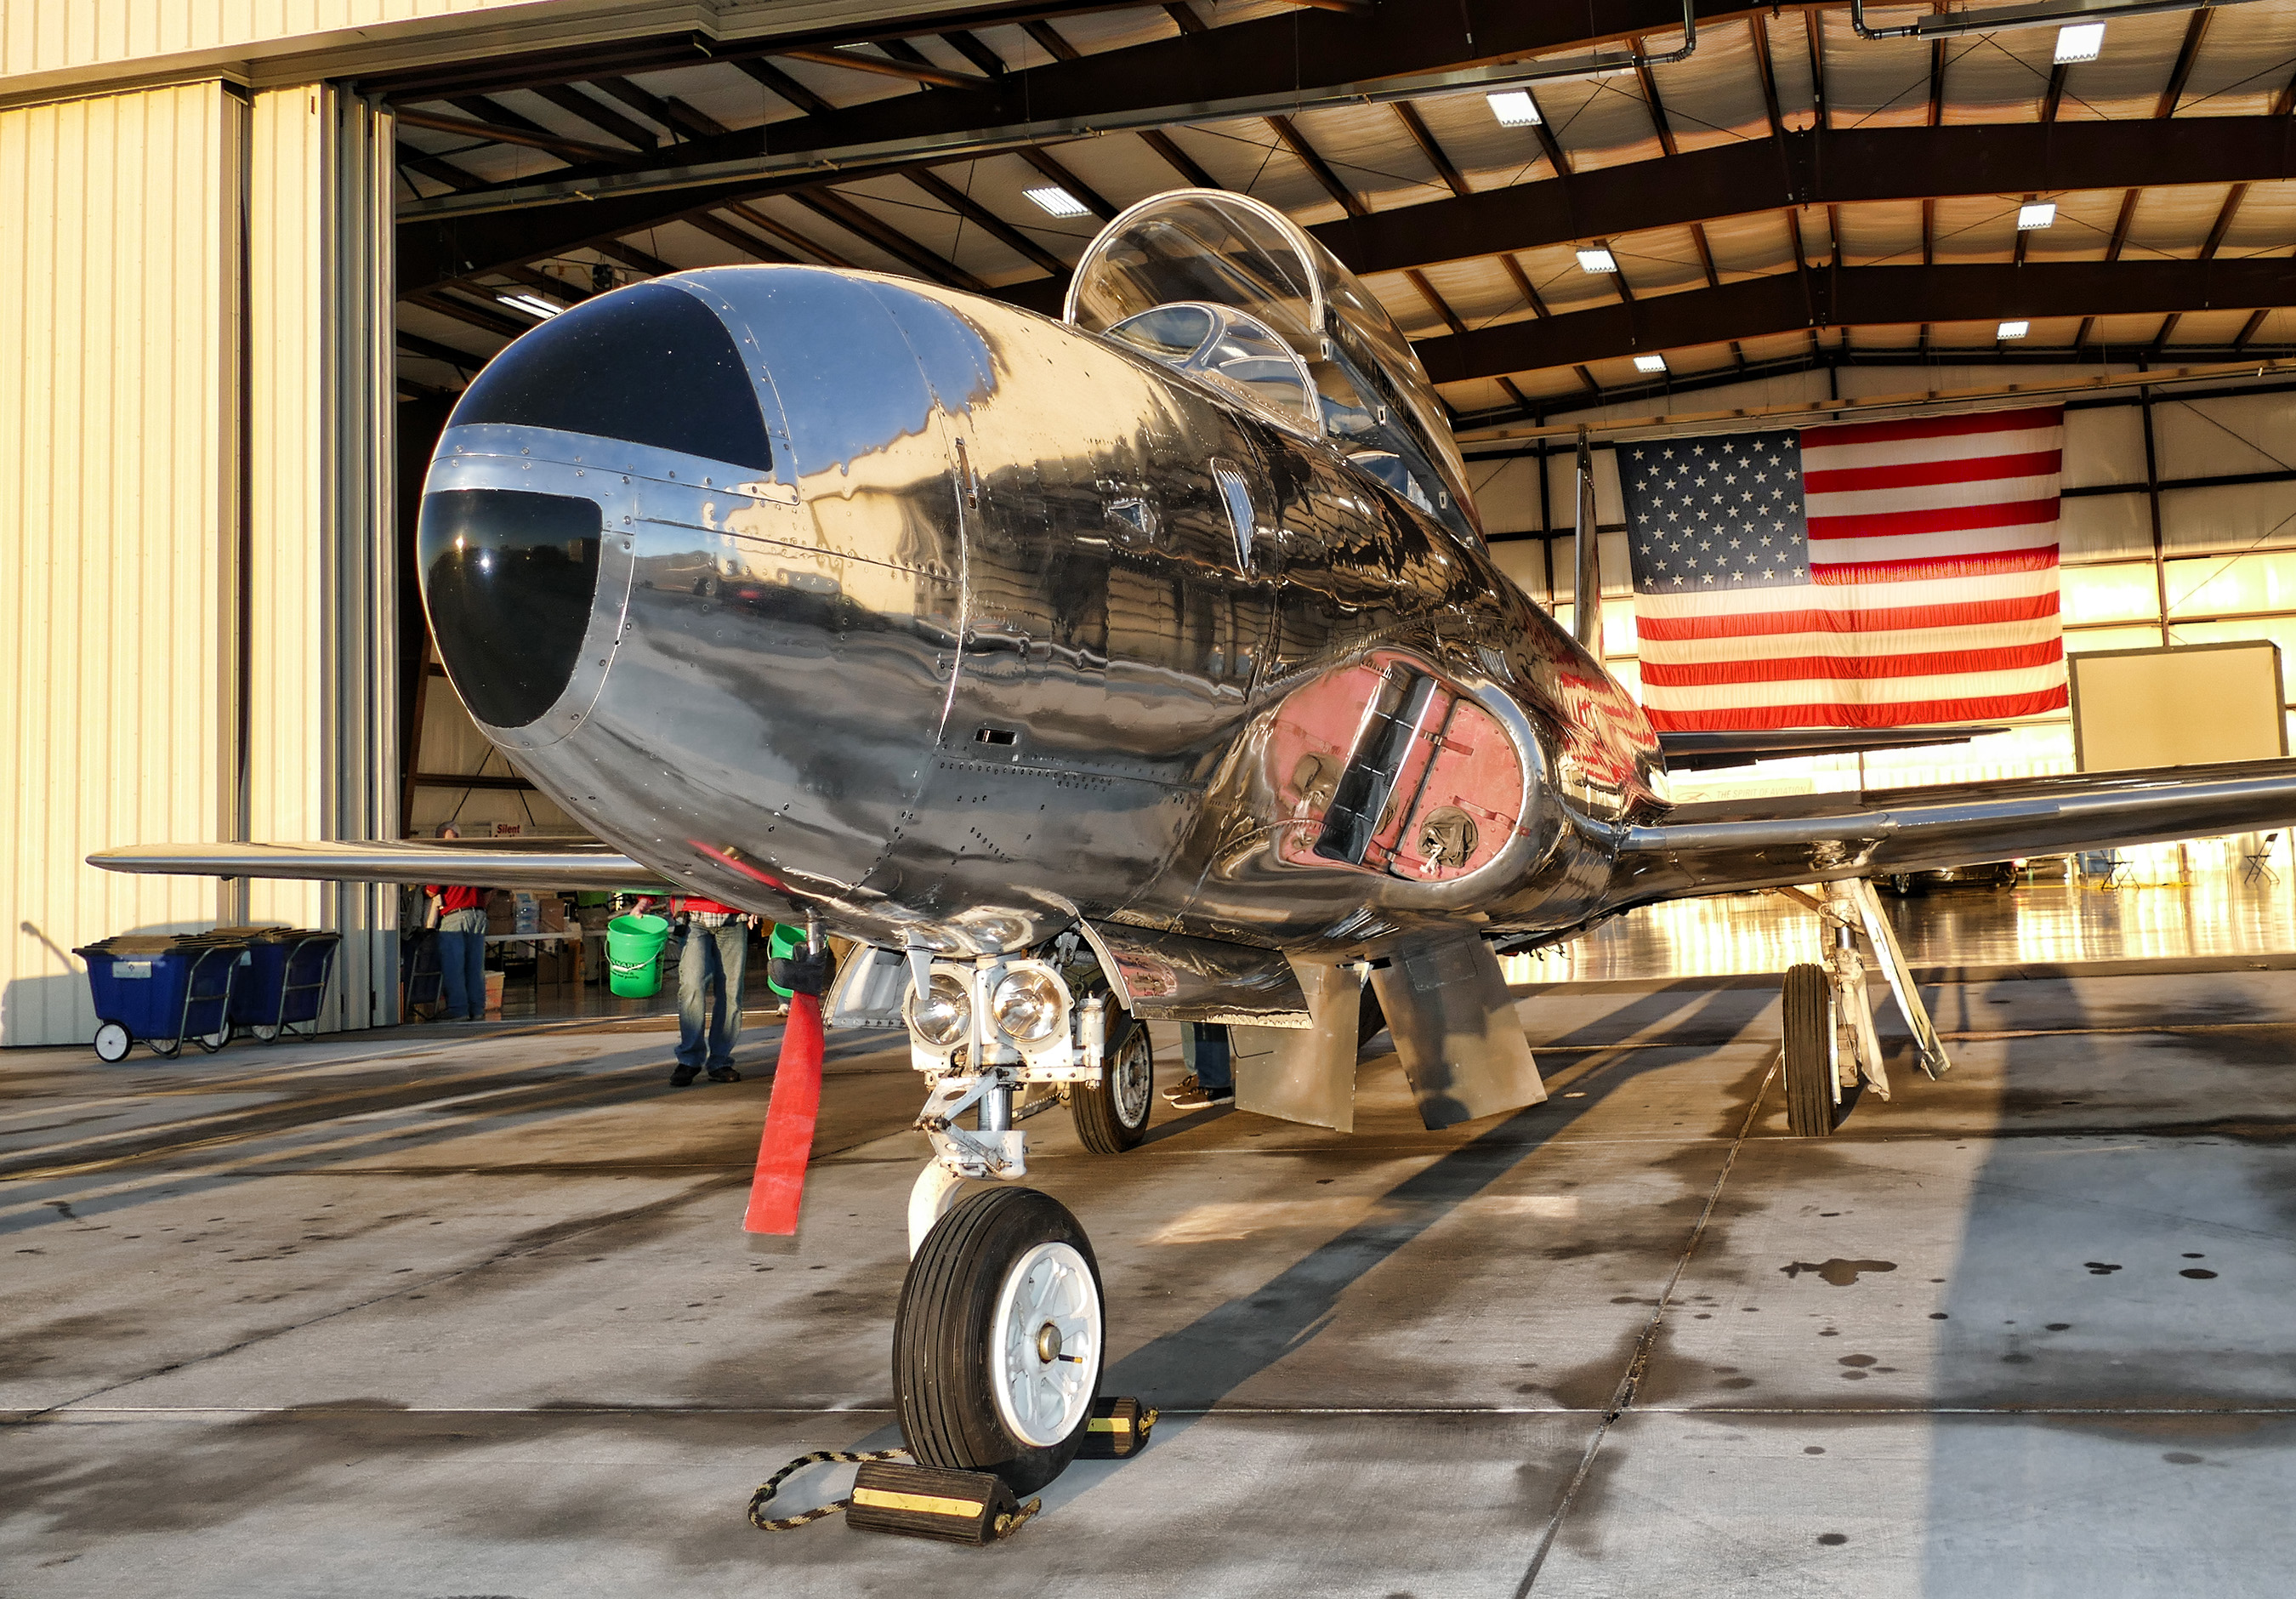 T-33 IN HANGAR WITH FLAG